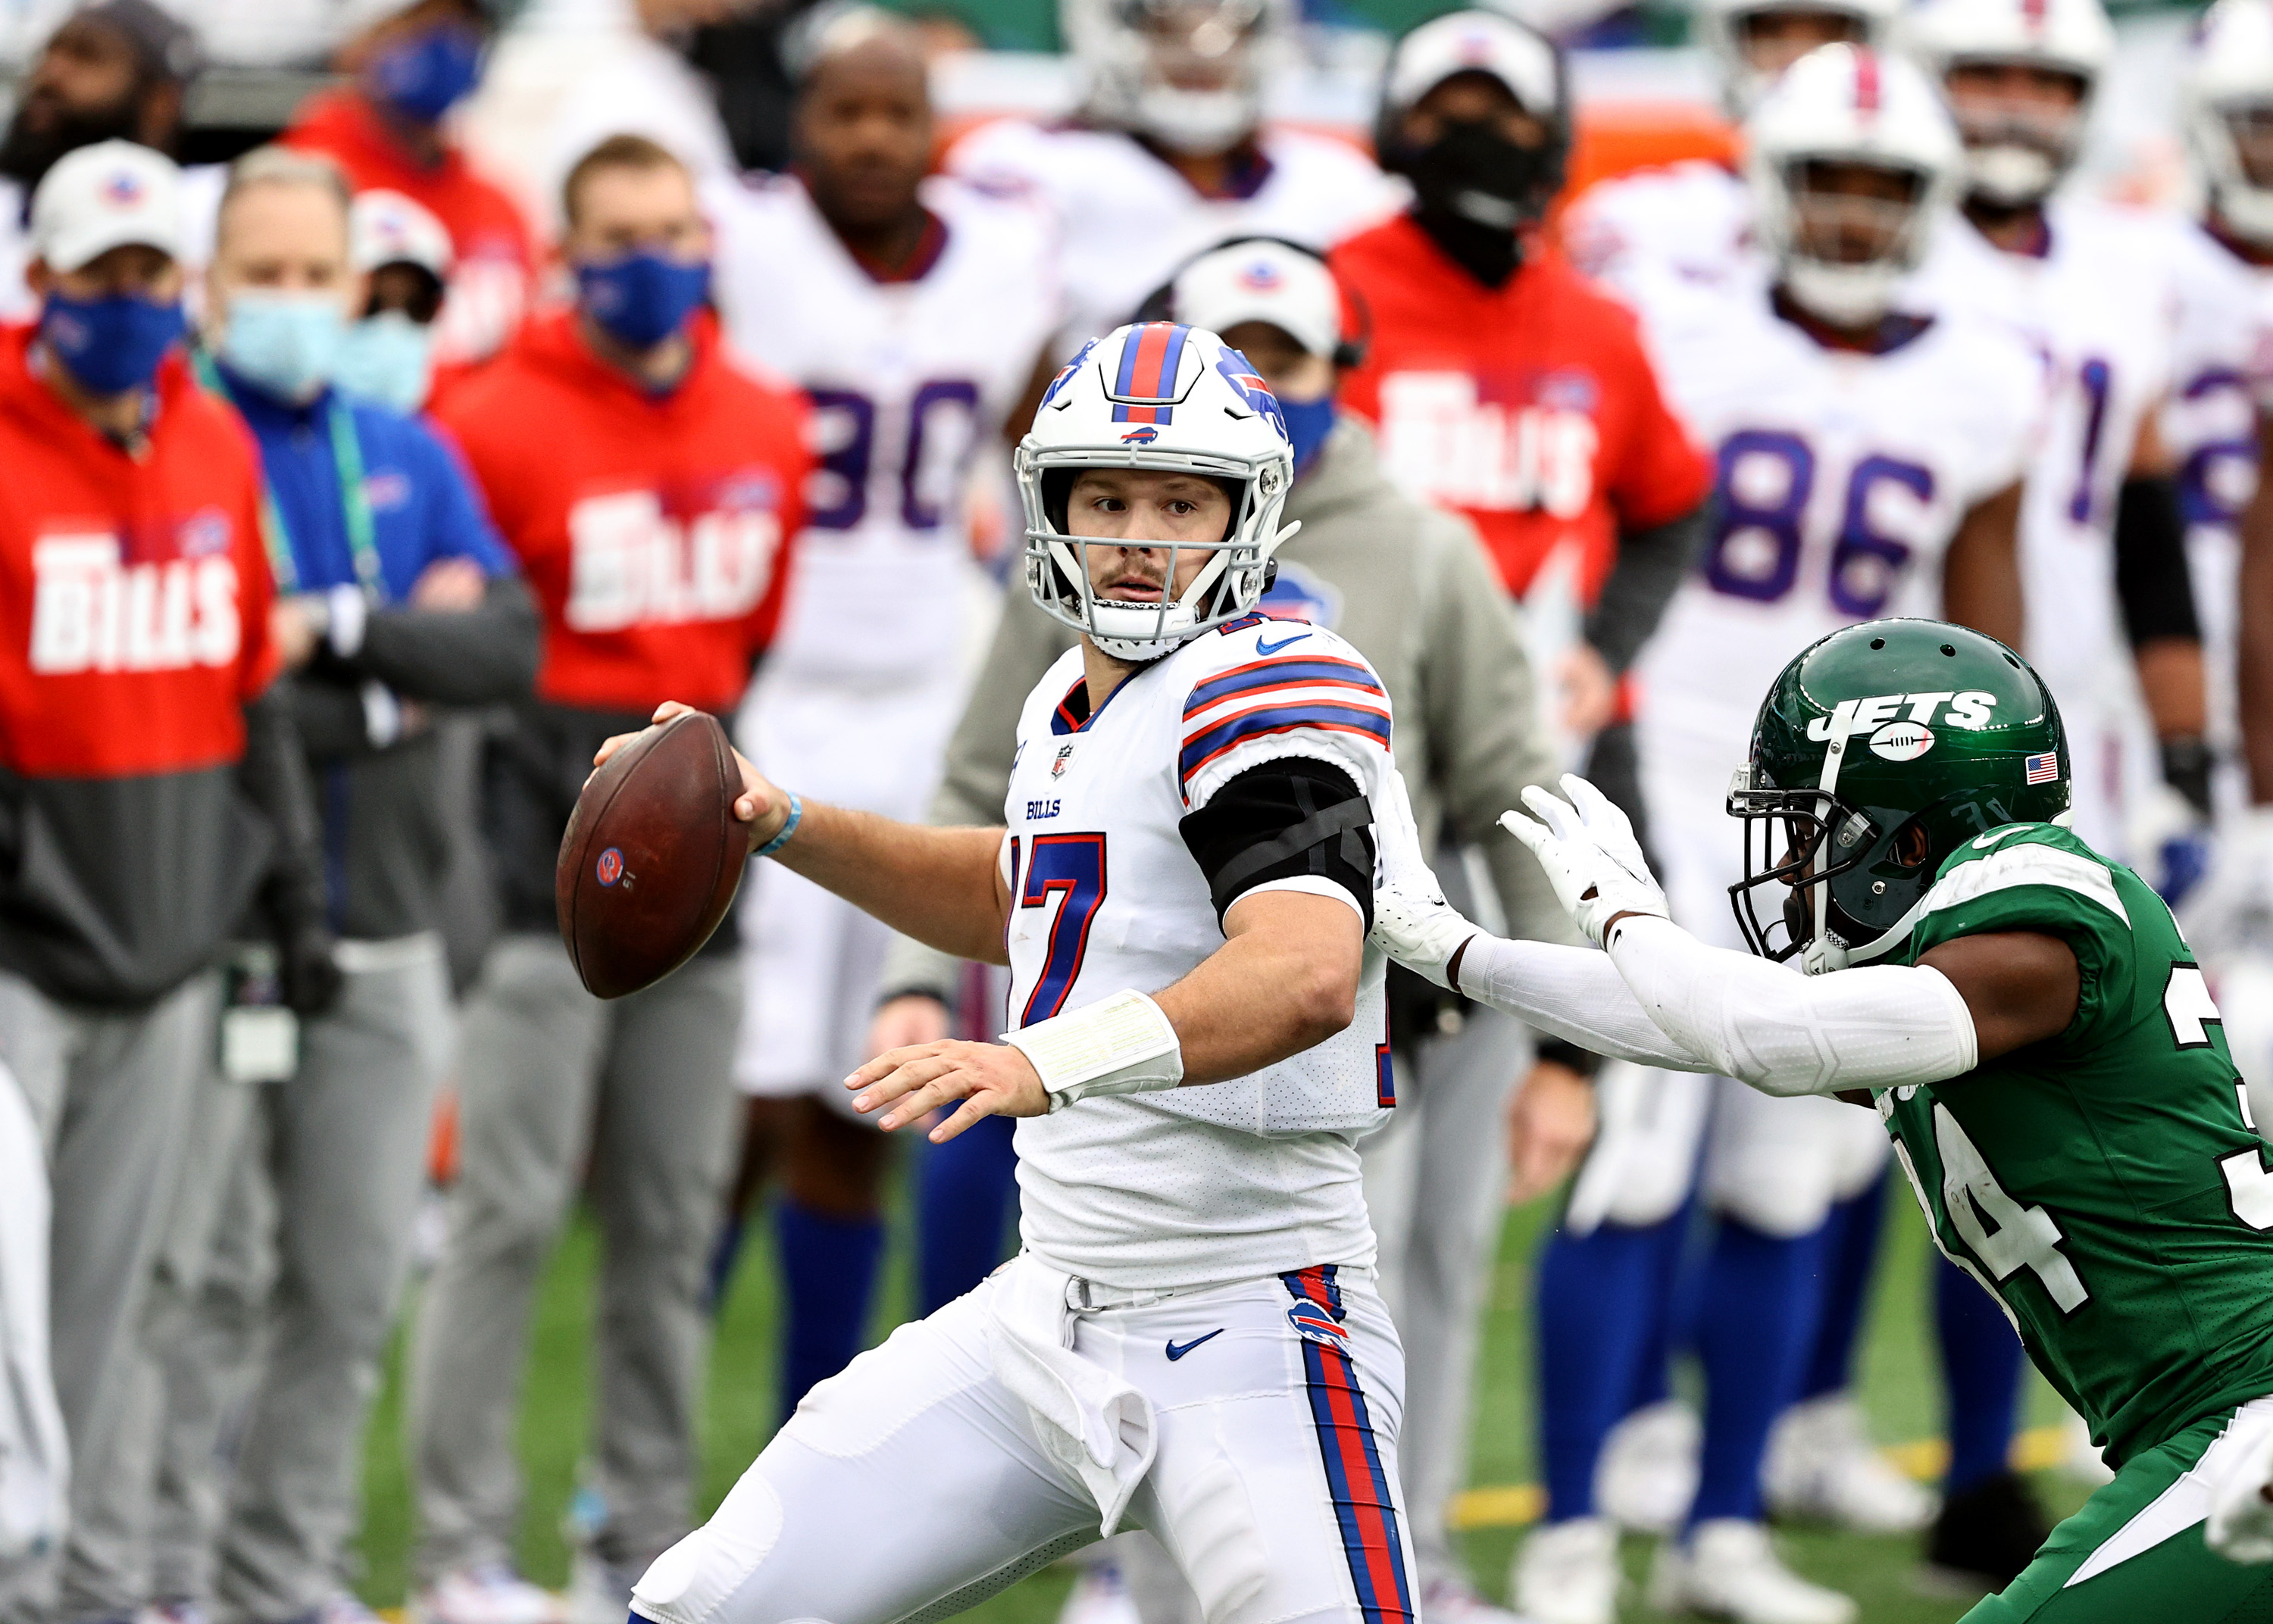 Josh Allen throwing a pass against the New York Jets